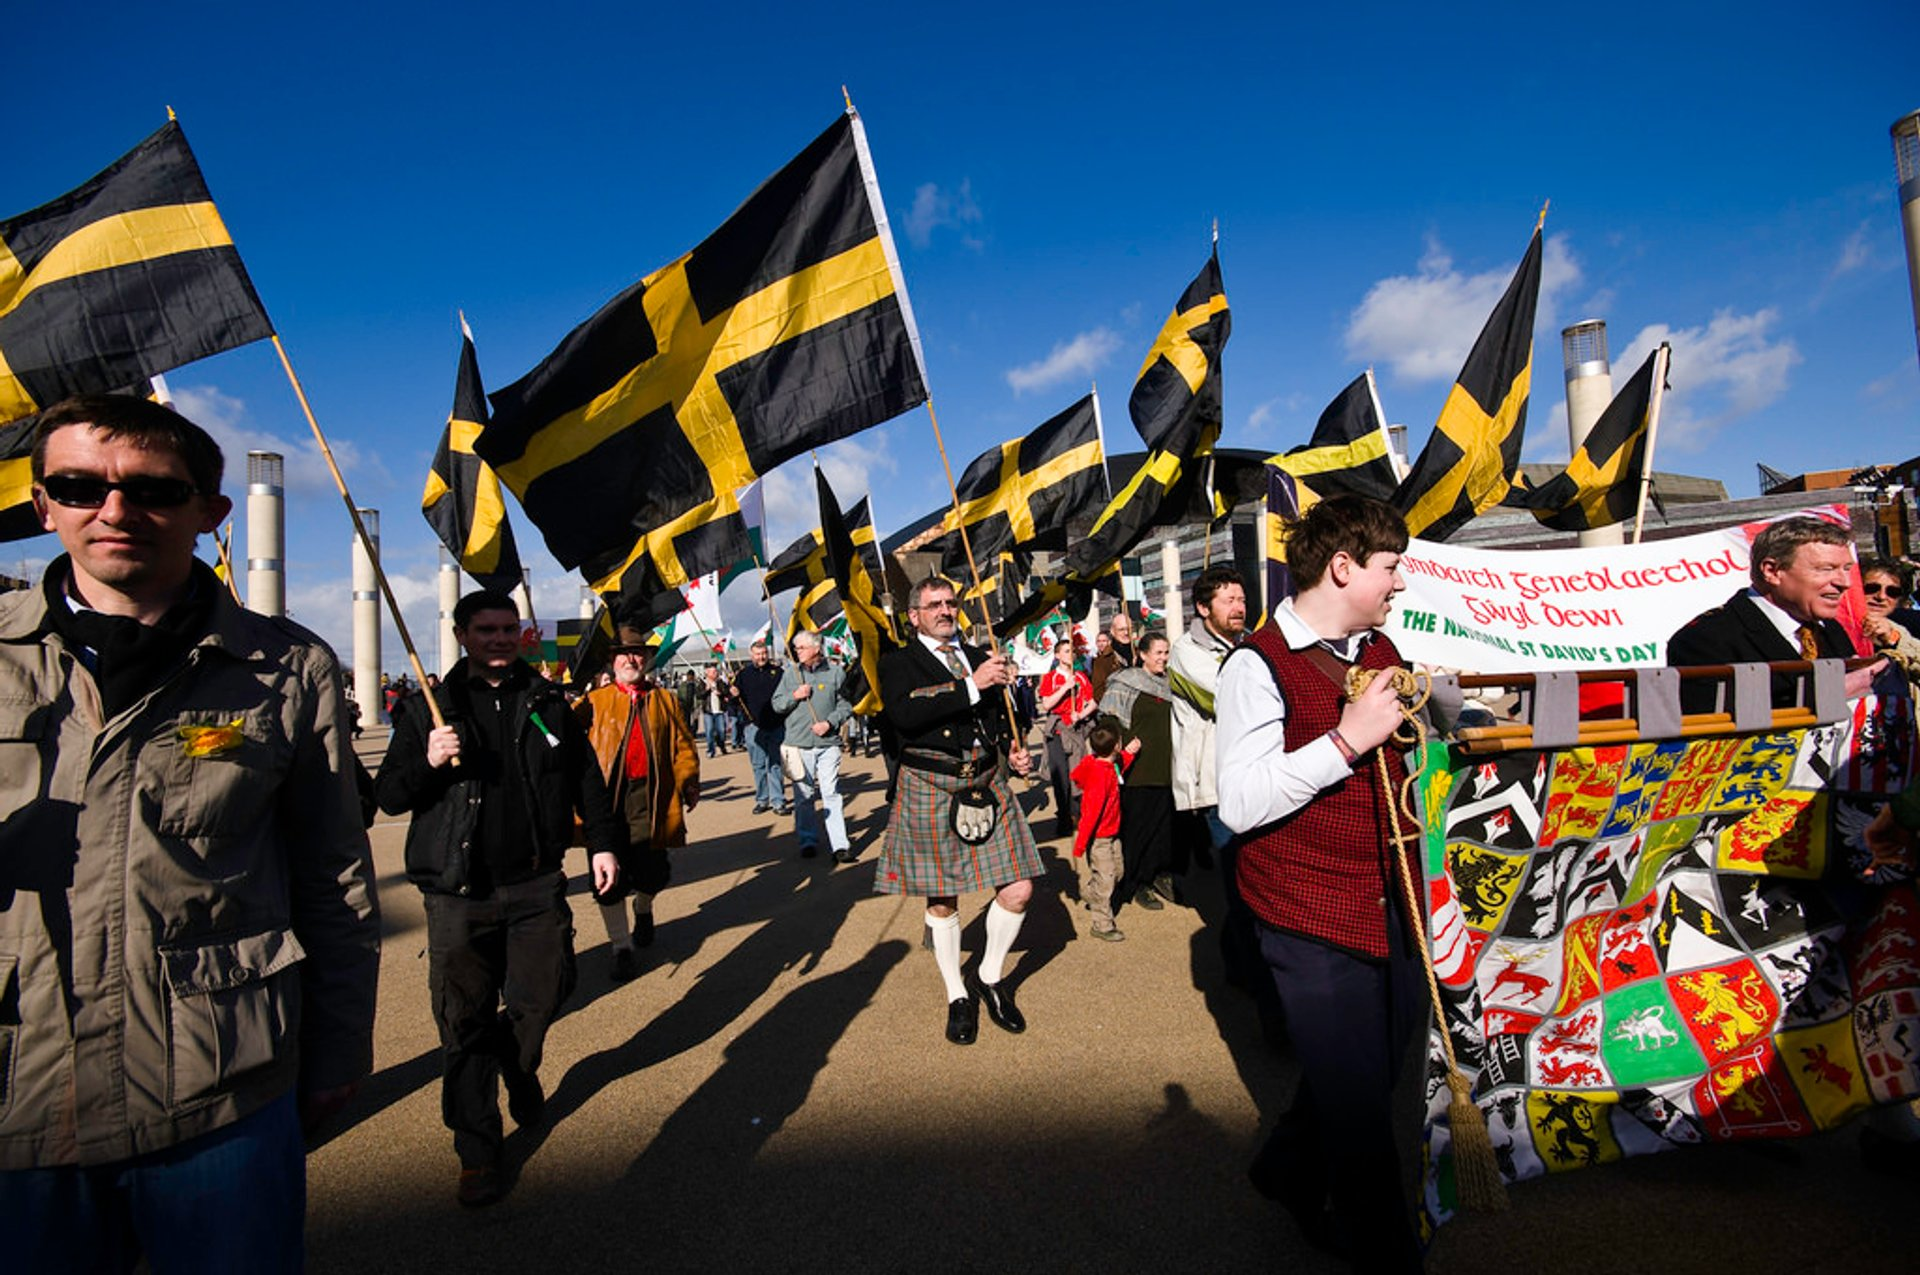 St. David's (Dewi Sant) Day in Wales 2020 - Best Time